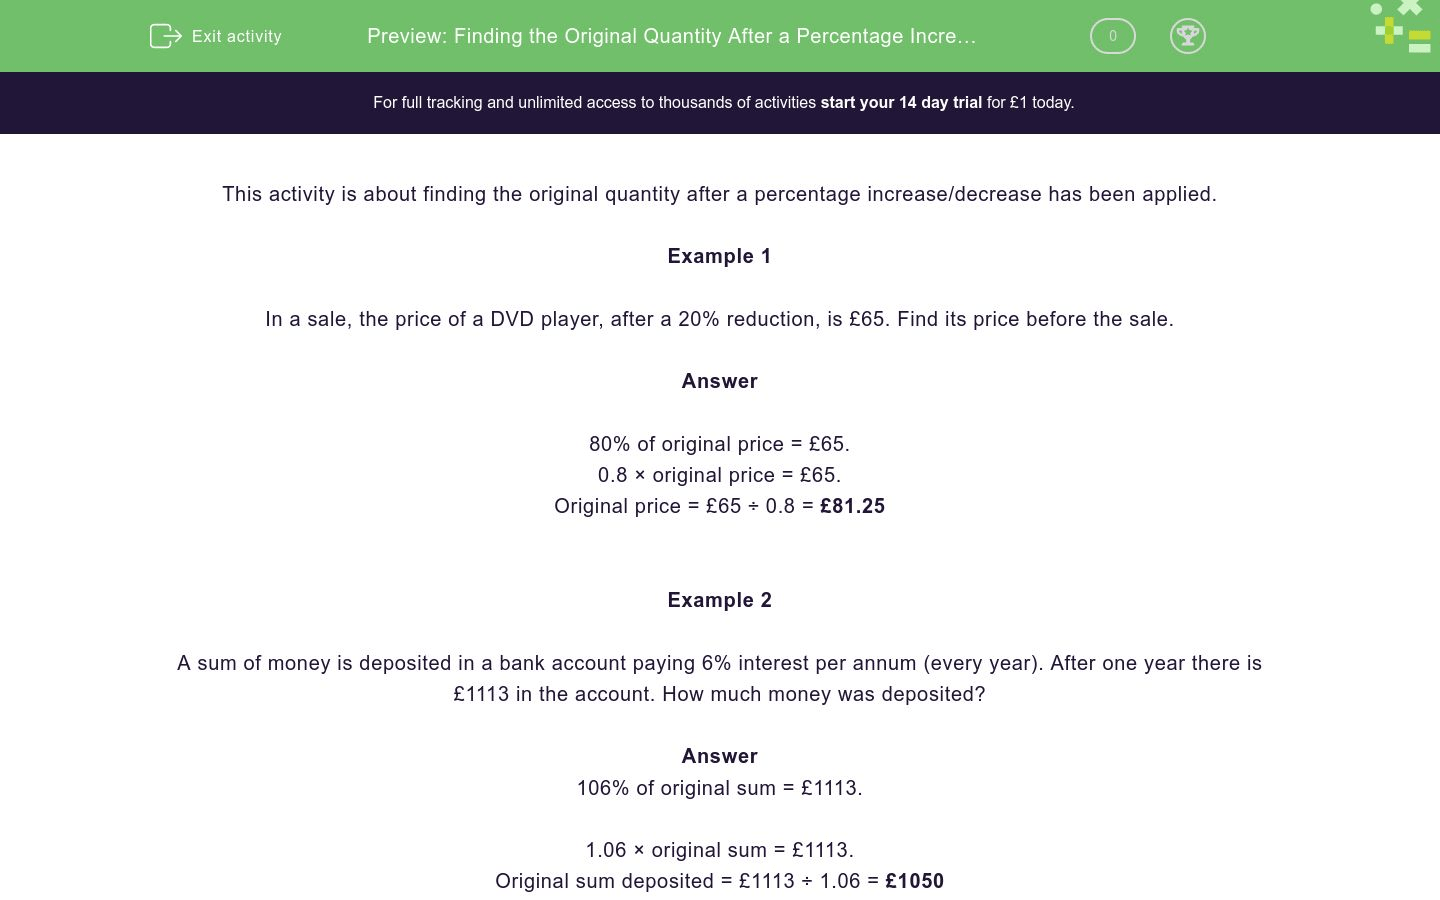 Finding The Original Quantity After A Percentage Increase